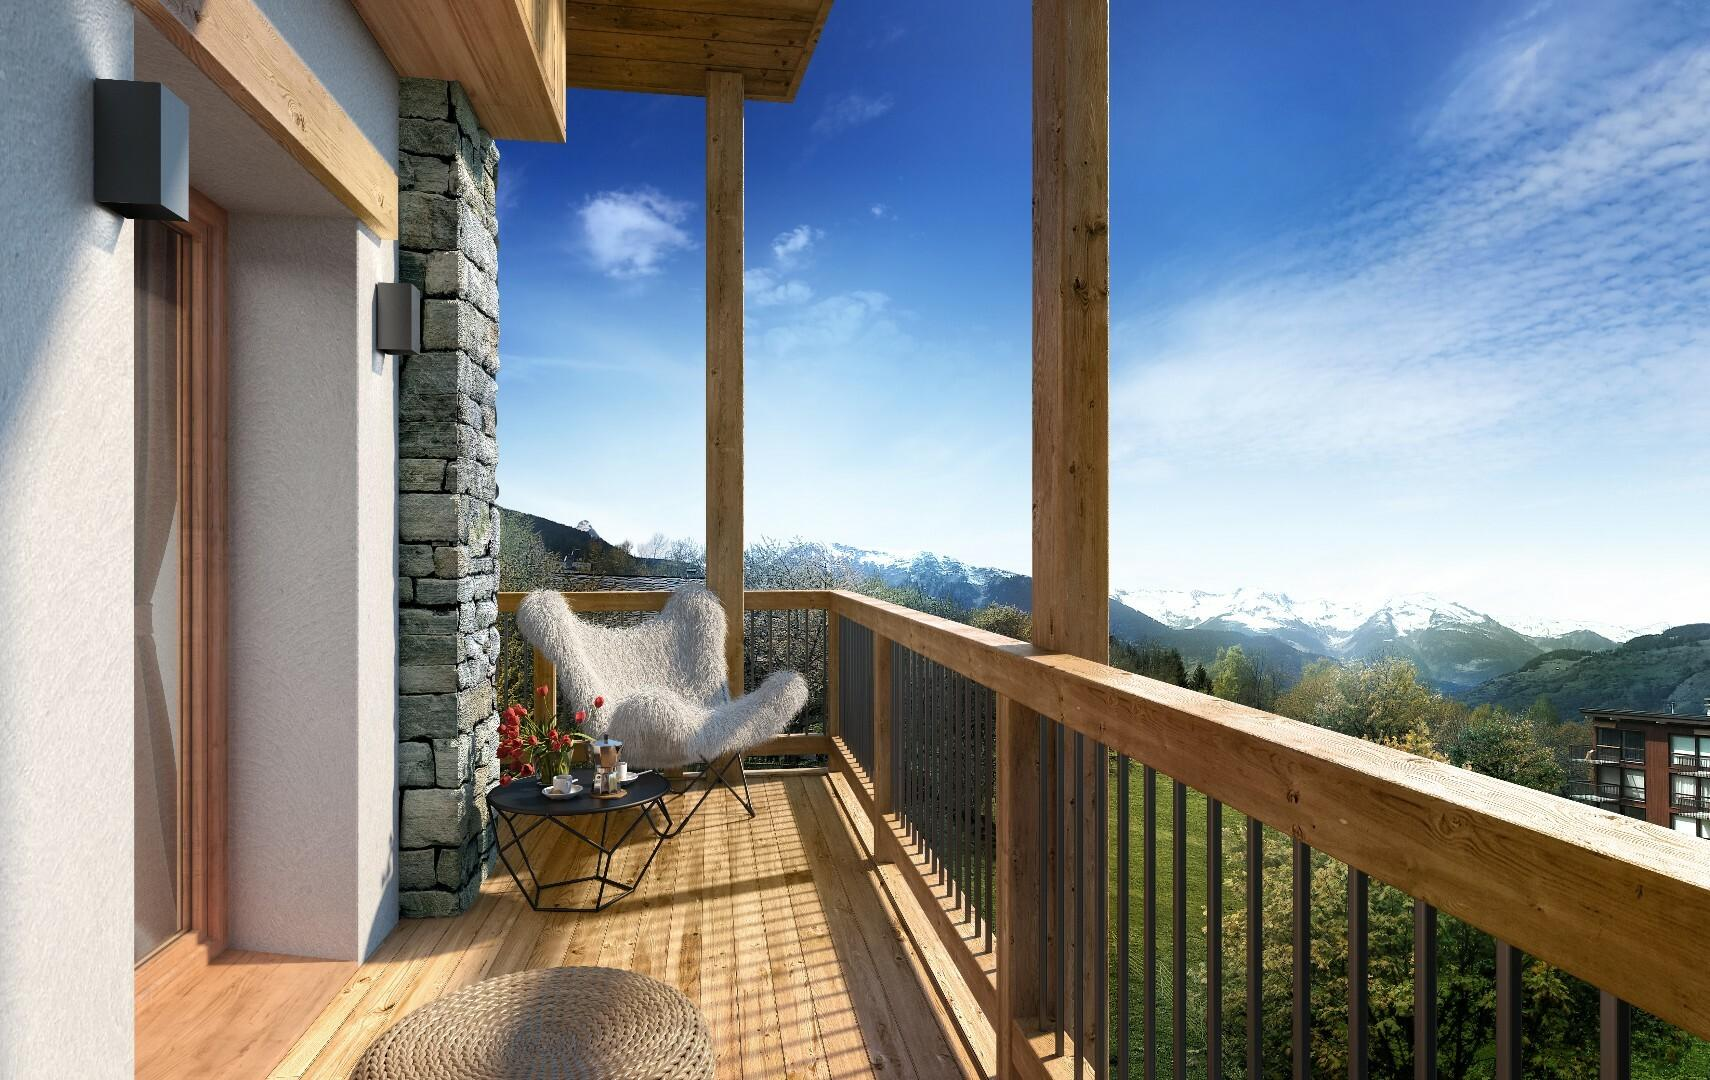 NEW APARTEMENT COURCHEVEL LE PRAZ